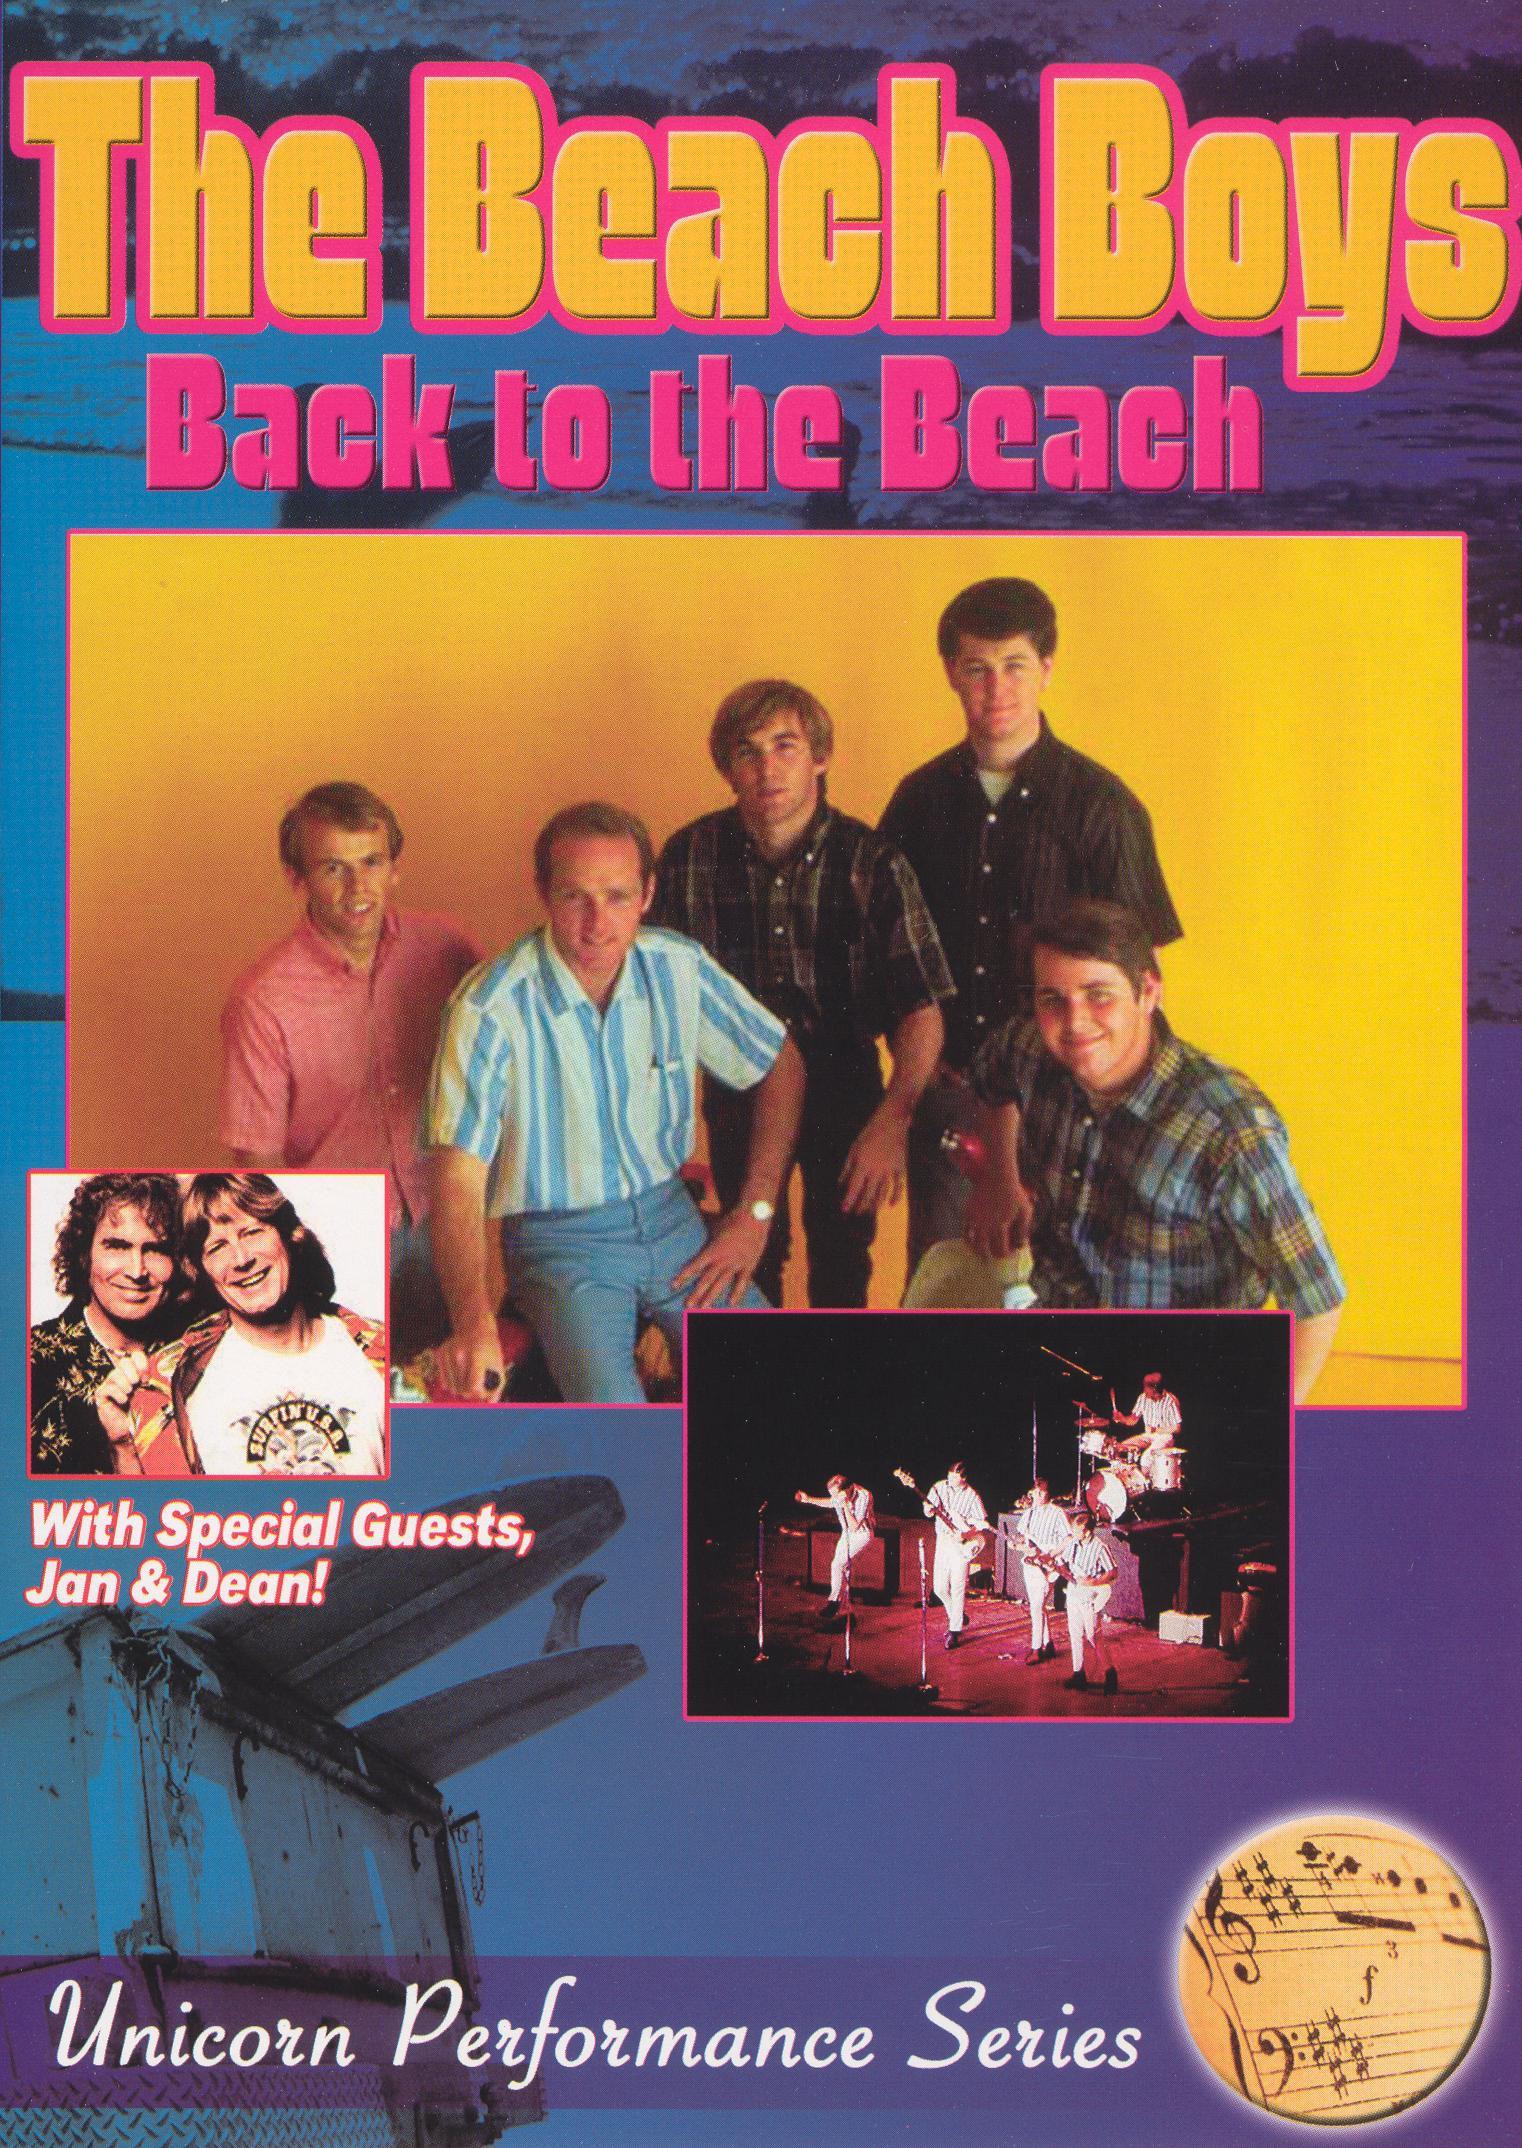 The Beach Boys: Back to the Beach